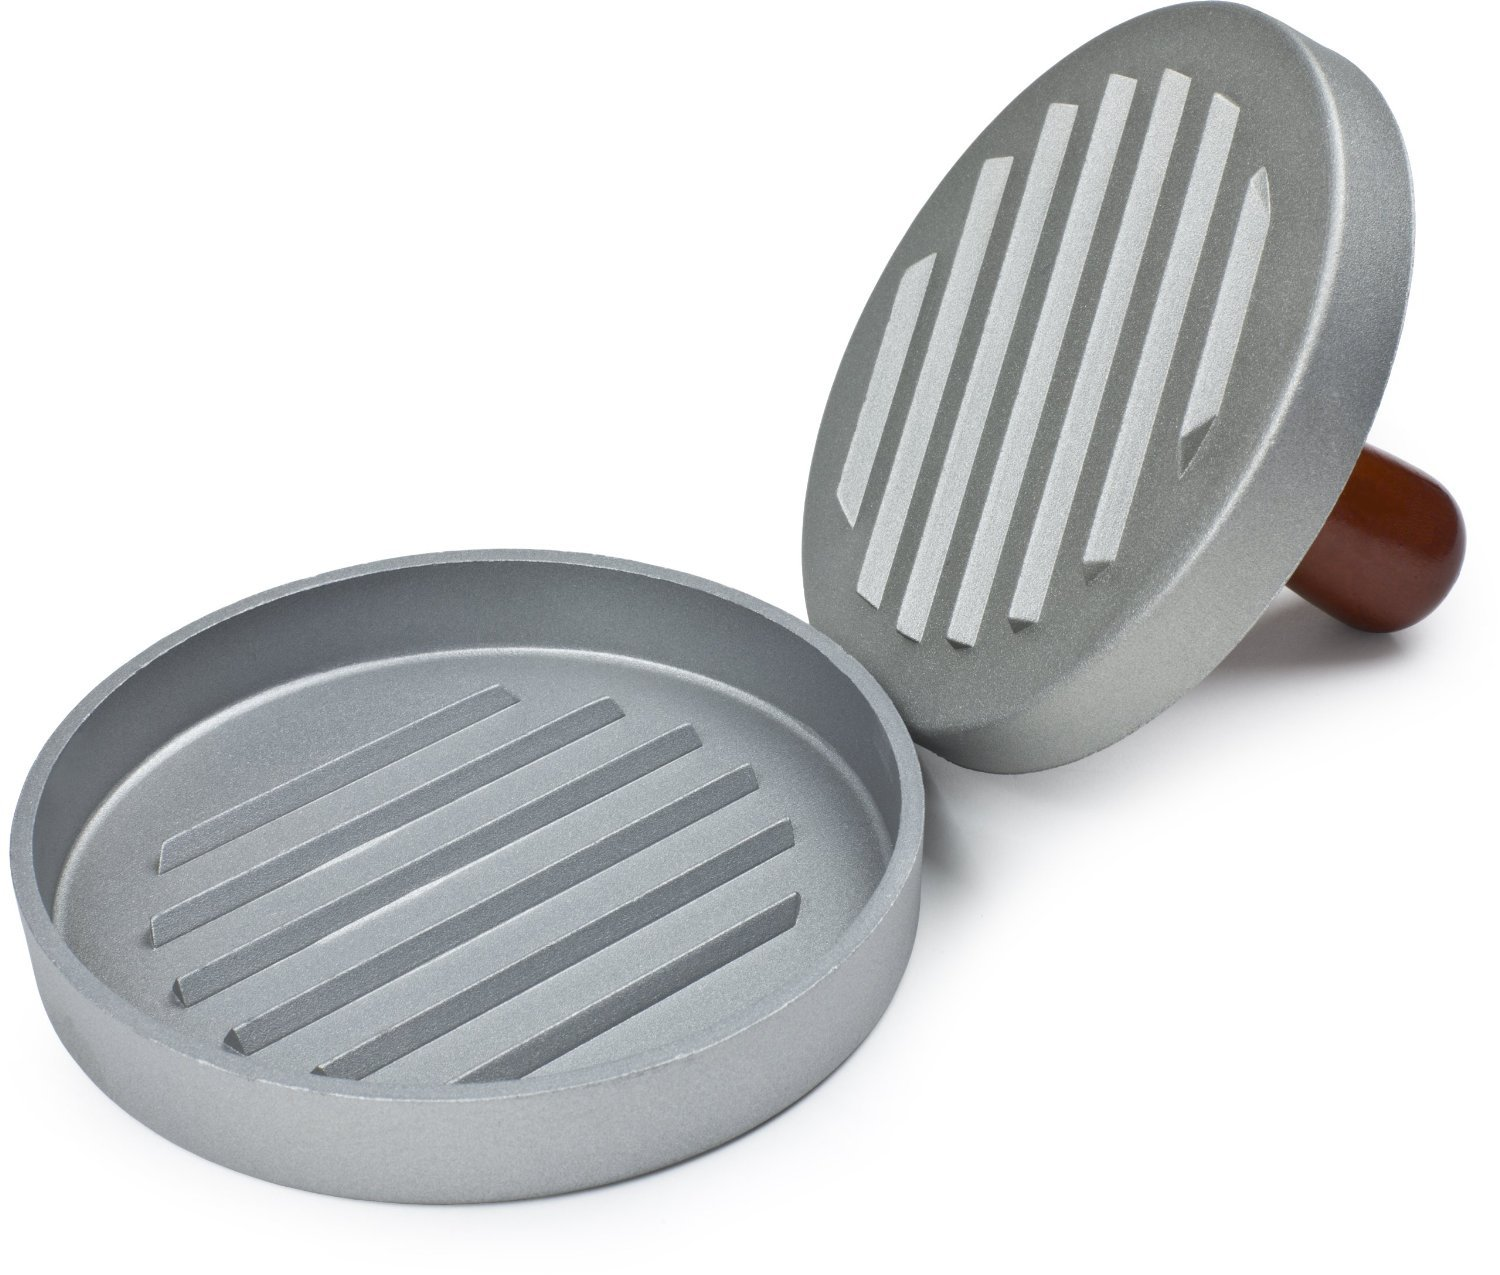 Kabalo Burger Press, 12cm (5) diameter, Heavy Duty Non Stick Quarter Pounder Burger Press! 12cm (5) diameter